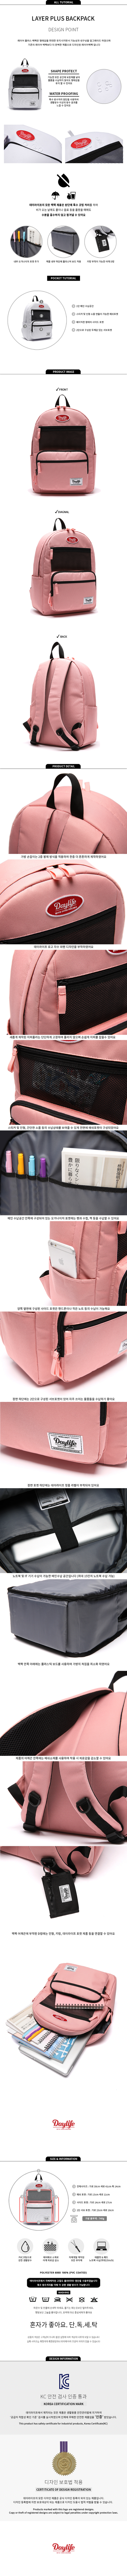 f_product_layer_pink.jpg